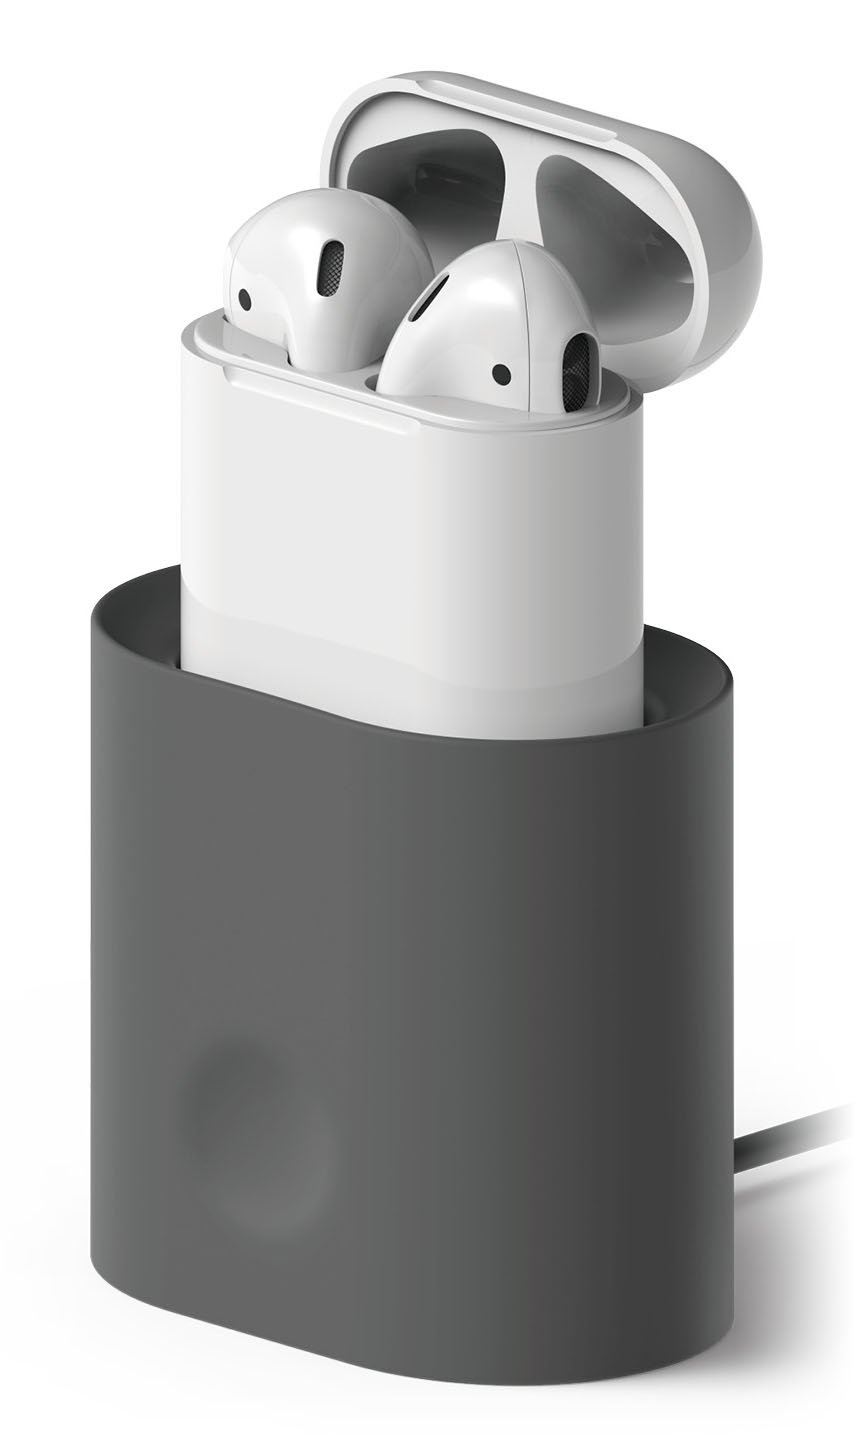 3dd6bfe3651 Amazon.com: elago AirPods Stand [Dark Grey] - [Compatible with Apple AirPods  1 & 2][Charging Station][Long-Lasting][Cable Management] - for AirPods 1 &  2: ...